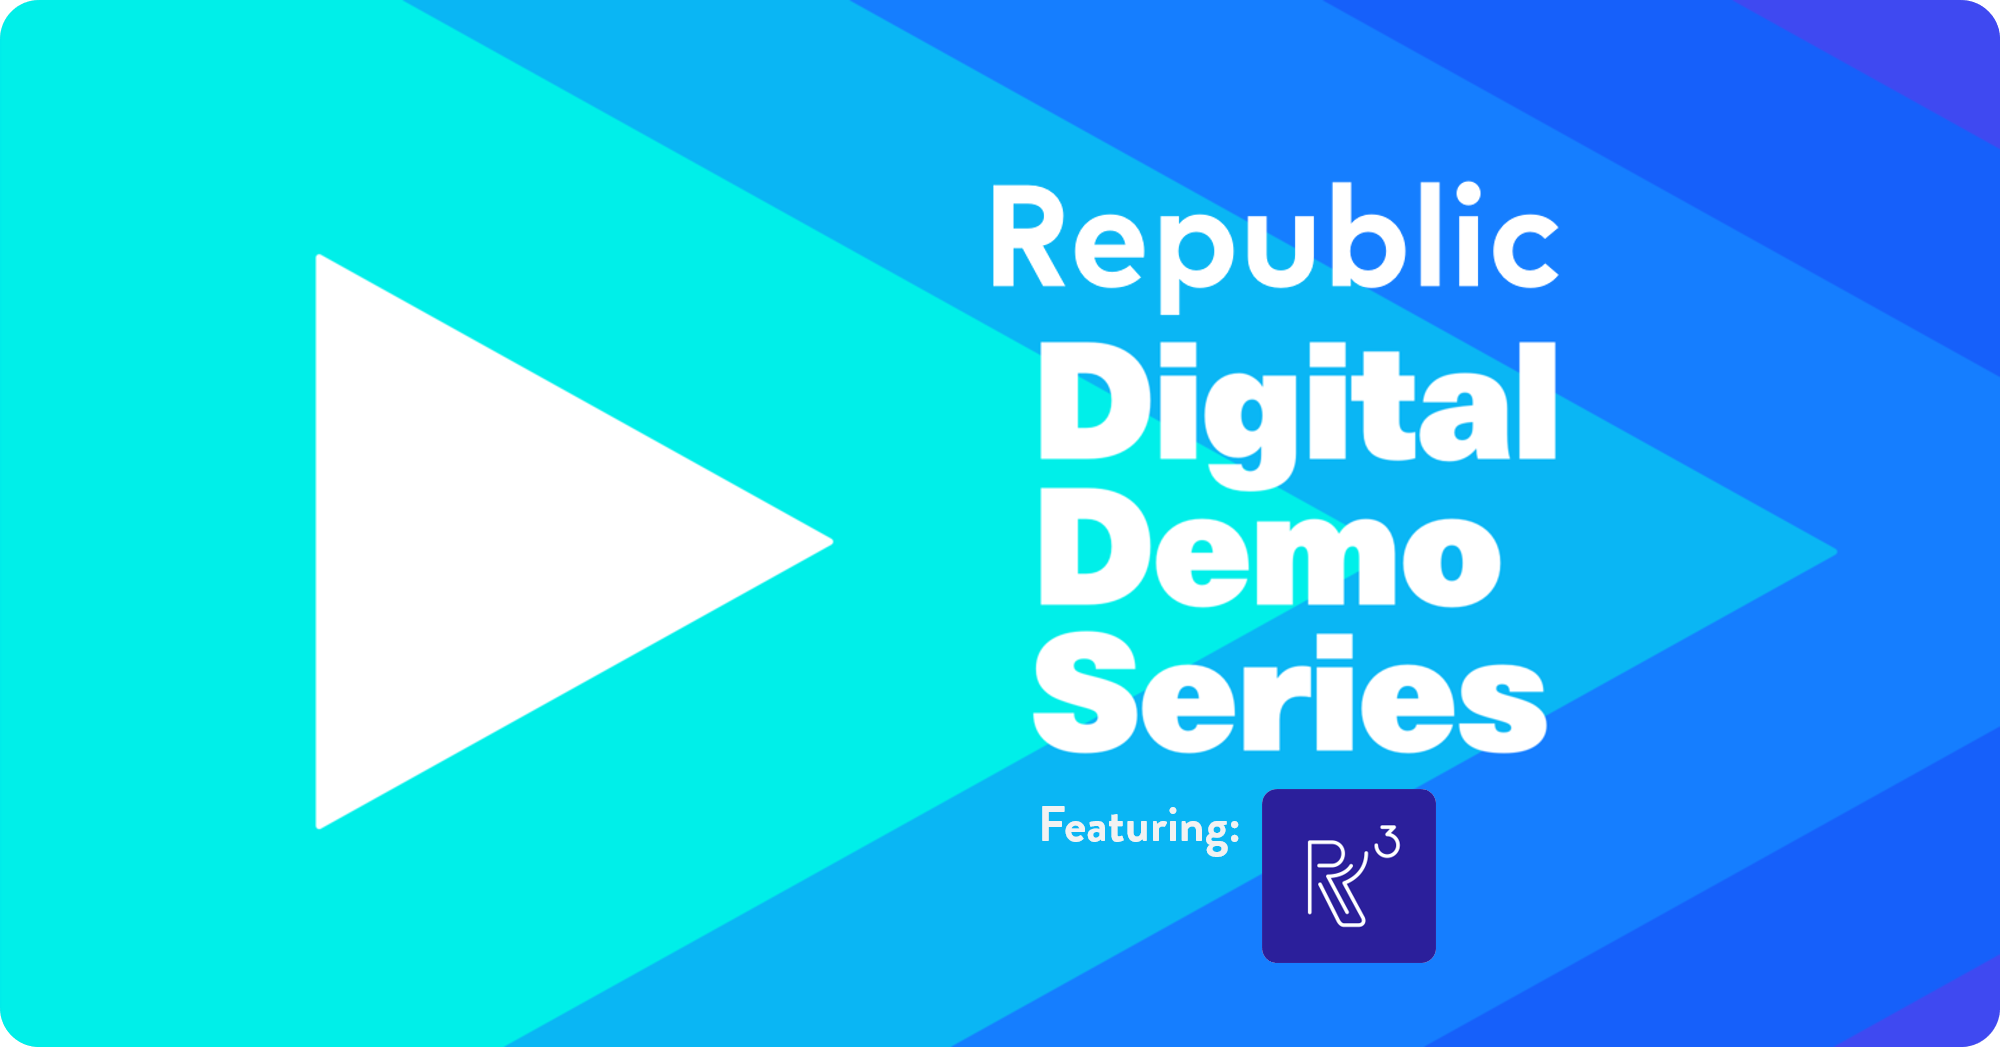 Republic Digital Demo Series feat. R3 Printing